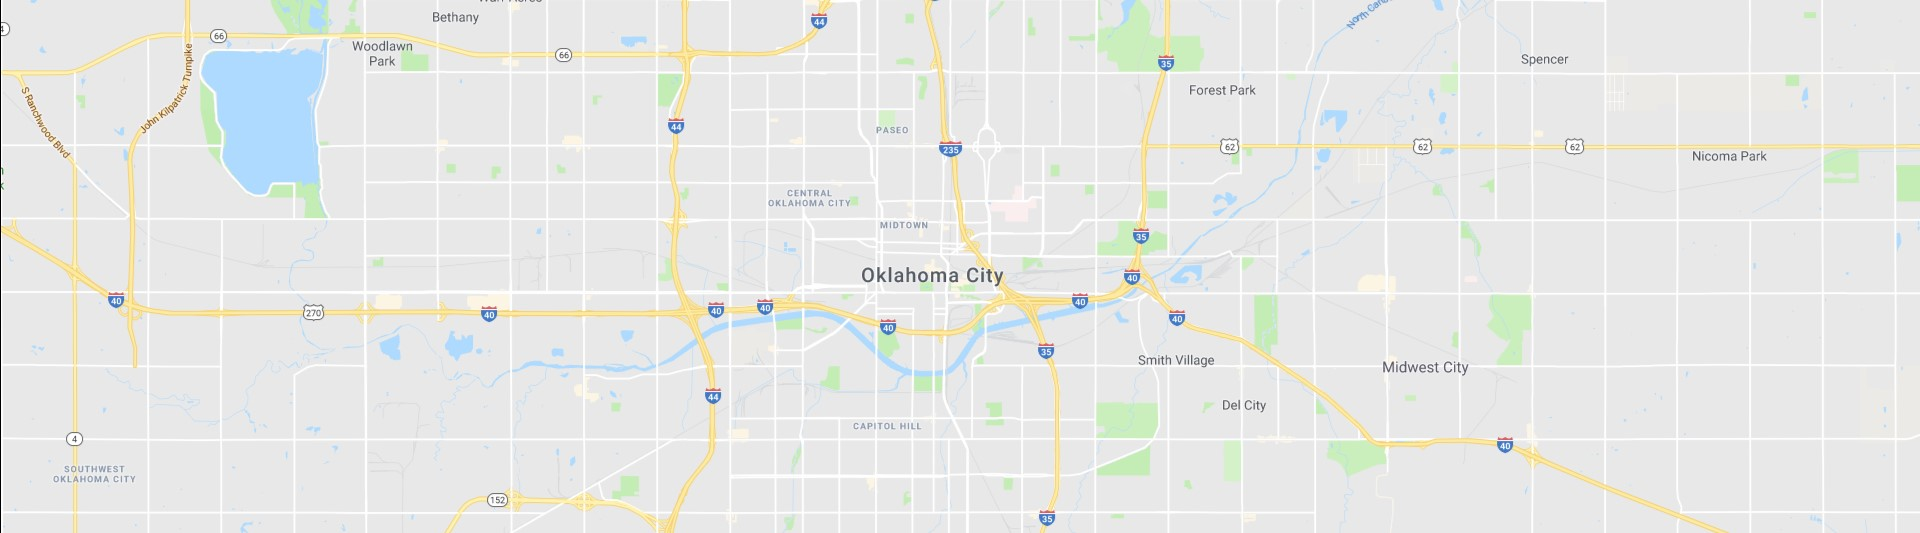 biohazardous waste removal Oklahoma City Area Oklahoma